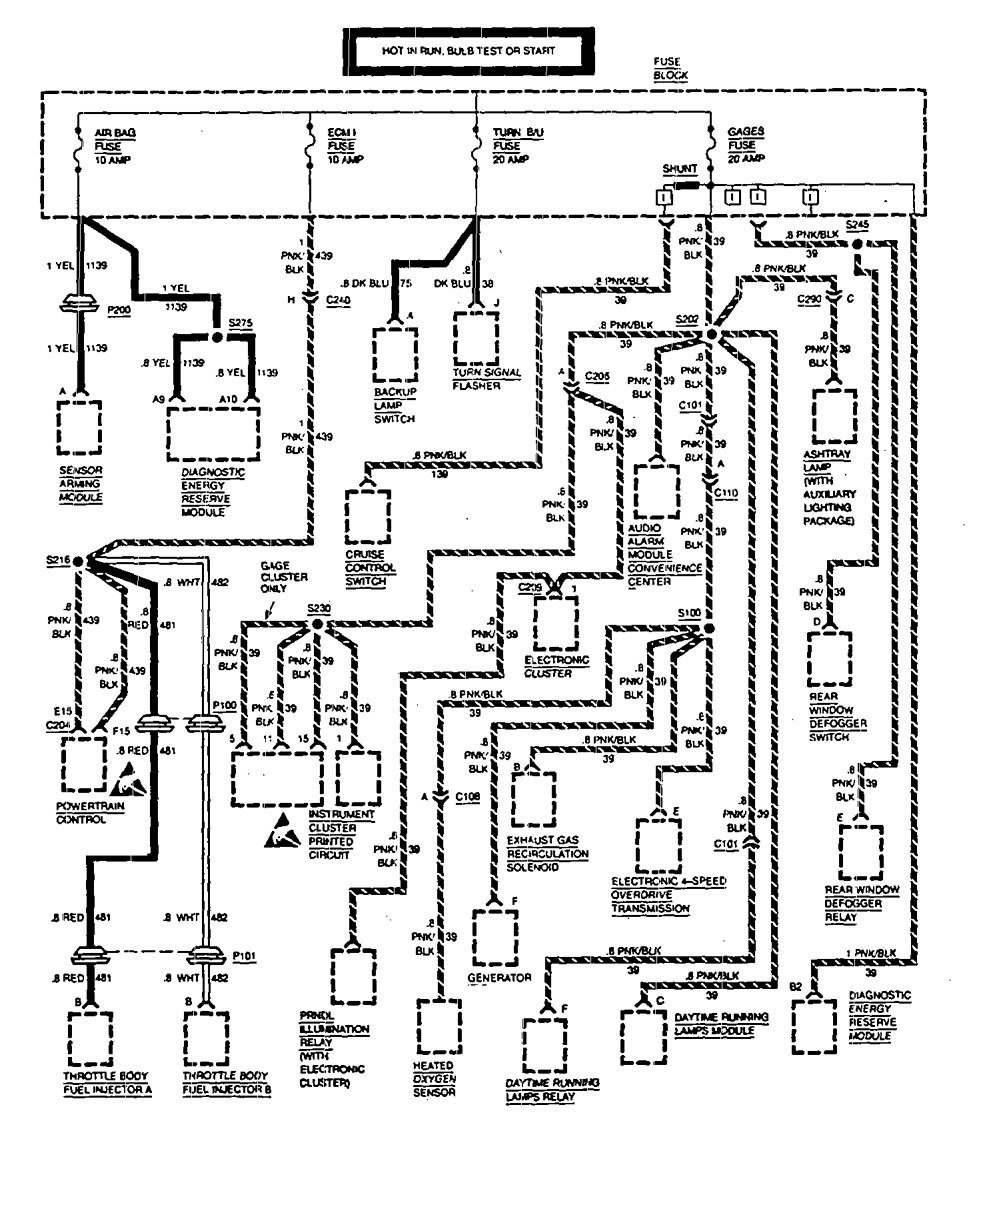 94 Chevy Astro Wiring Diagram Wiring Circuit \u2022 Chevy Optra 5 Wiring Diagram  01 Chevy Astro Wiring Diagram